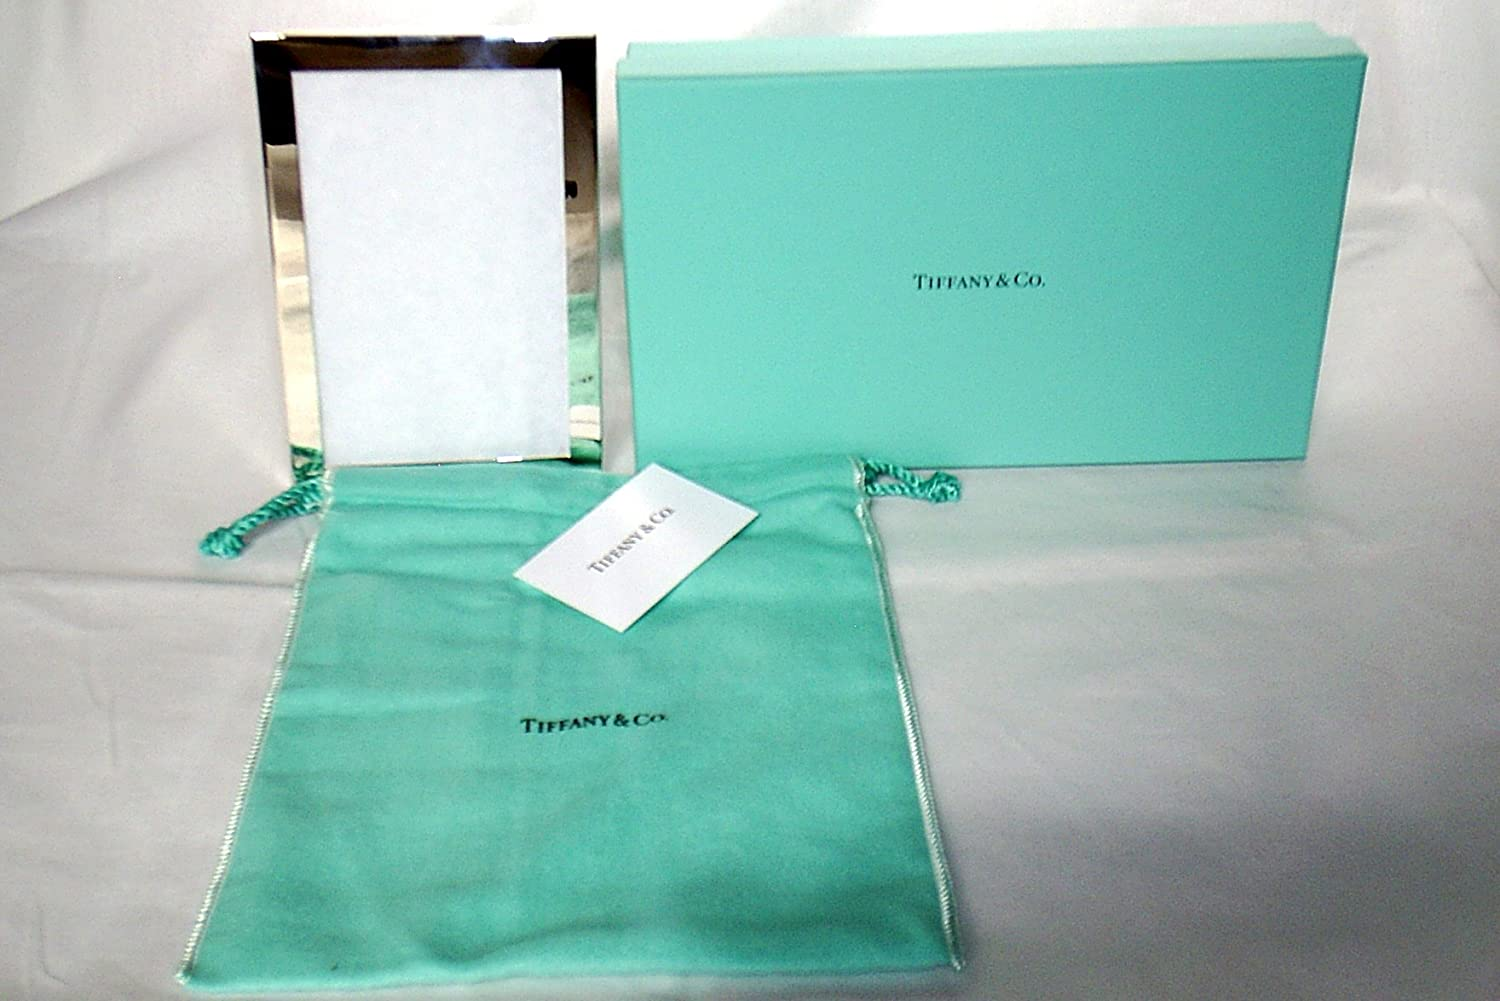 Amazon.com - Tiffany & CO. Sterling Silver Frame 4 x 6 - Single Frames